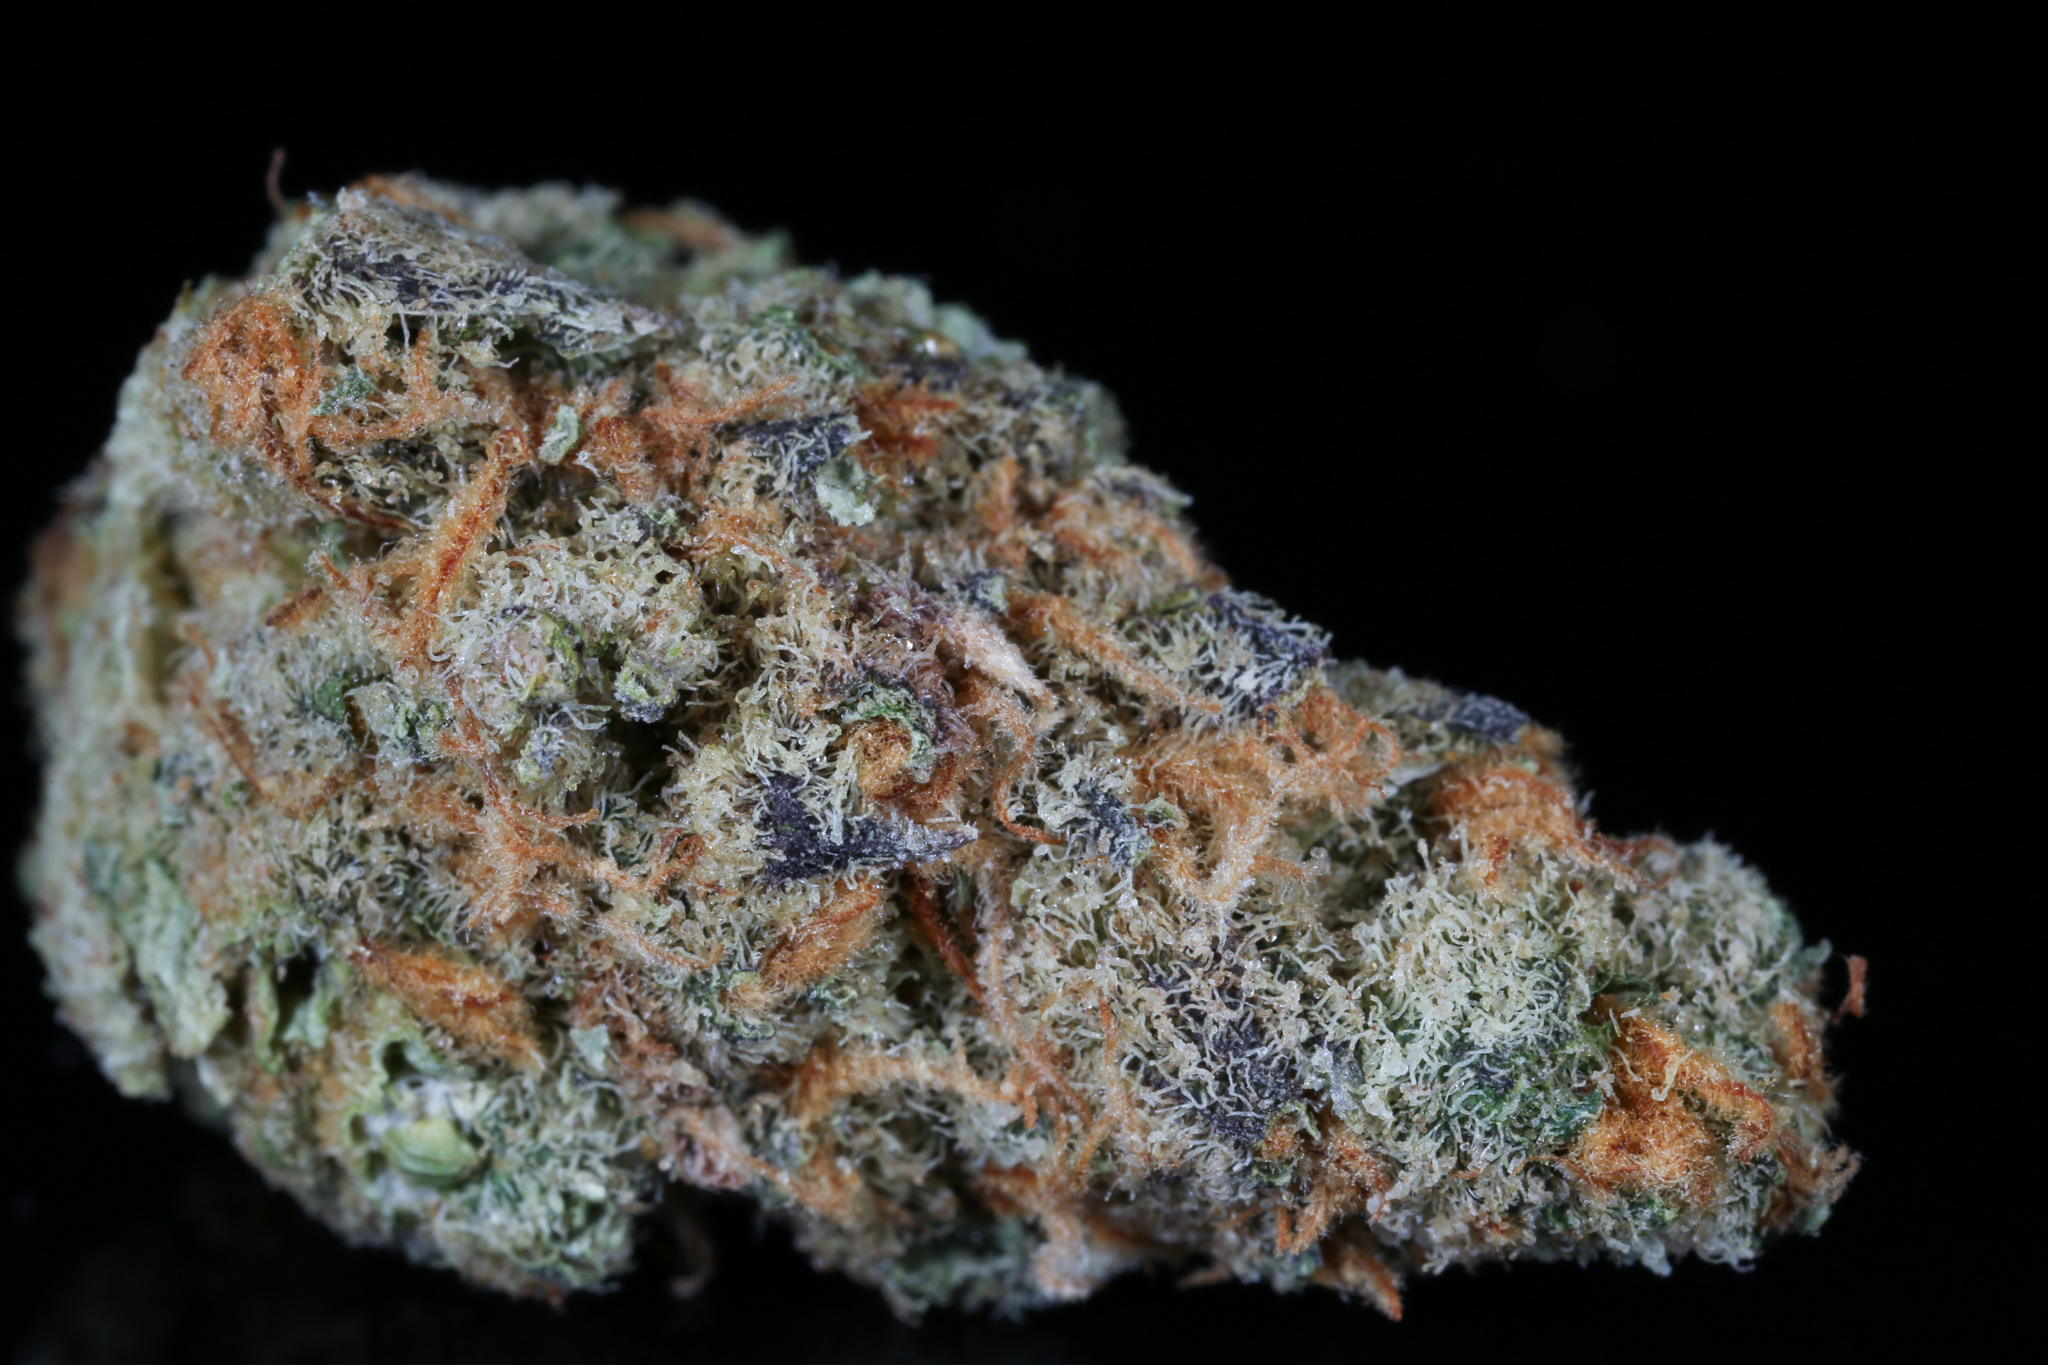 Slymer-weed-strain-matrix-tga-genetics-chernobyl-nevada-matrix-best-weed-everDried-4725